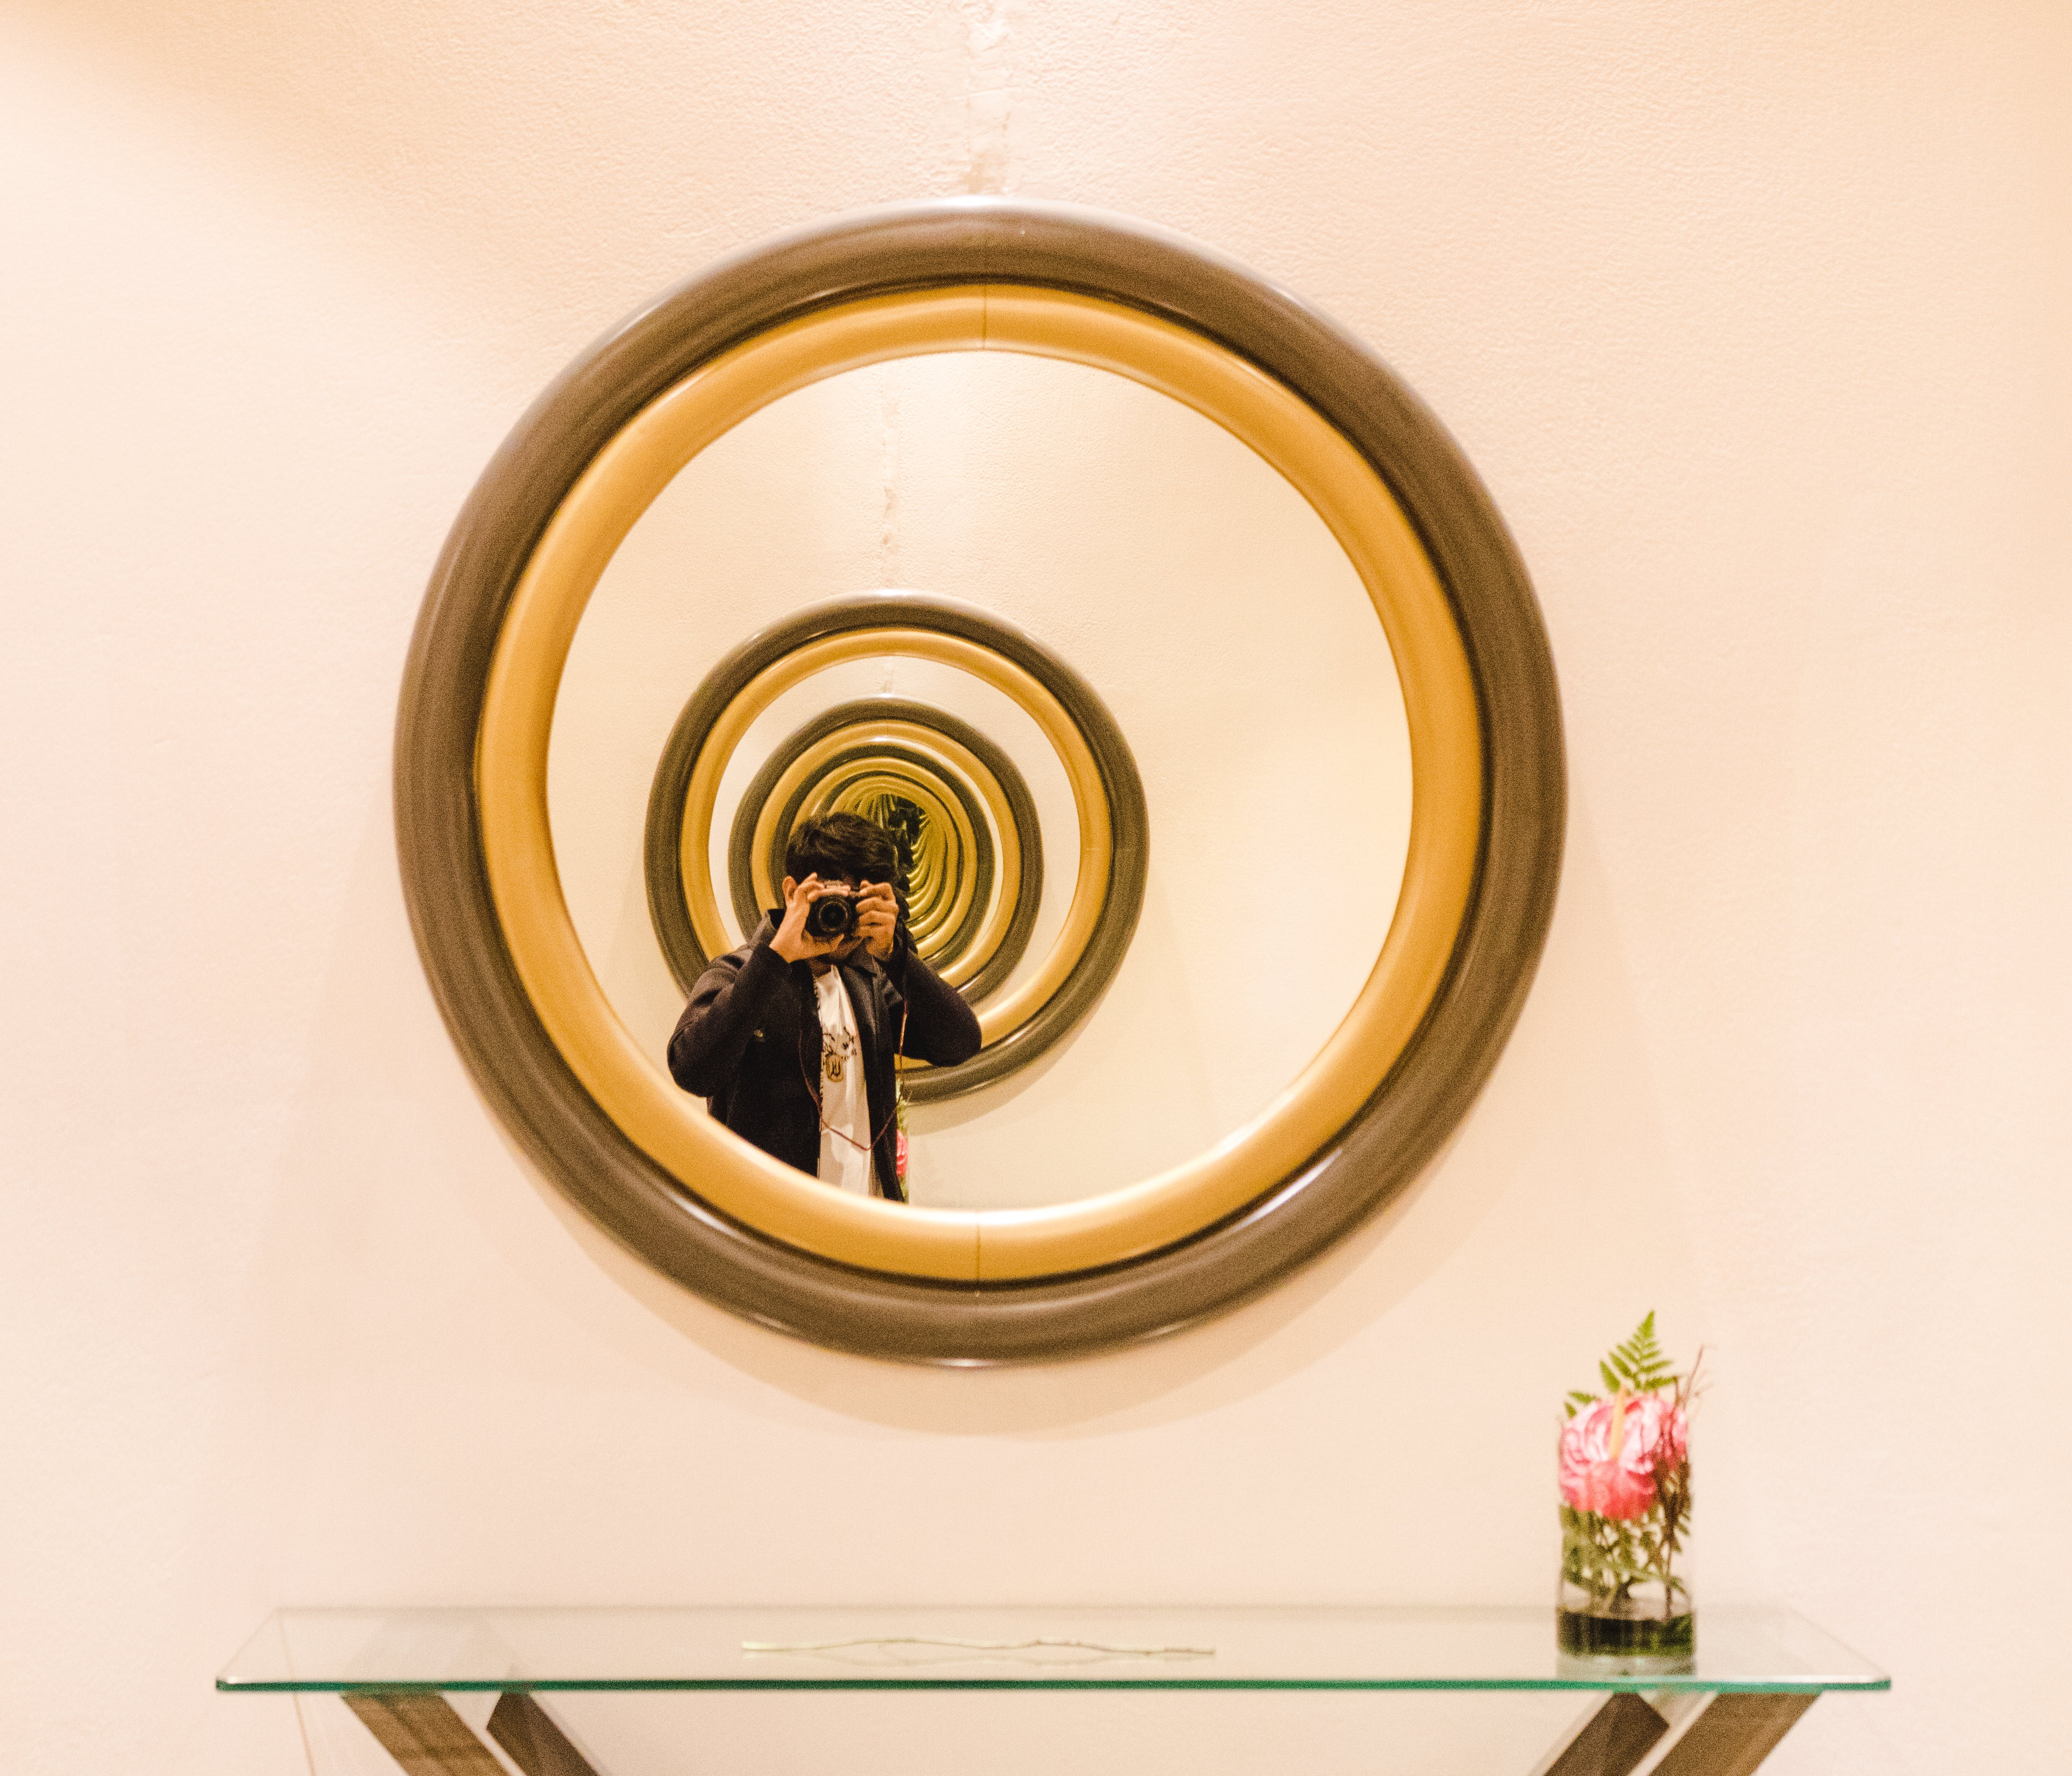 Person Reflect on Round Brown Wooden-framed Mirror